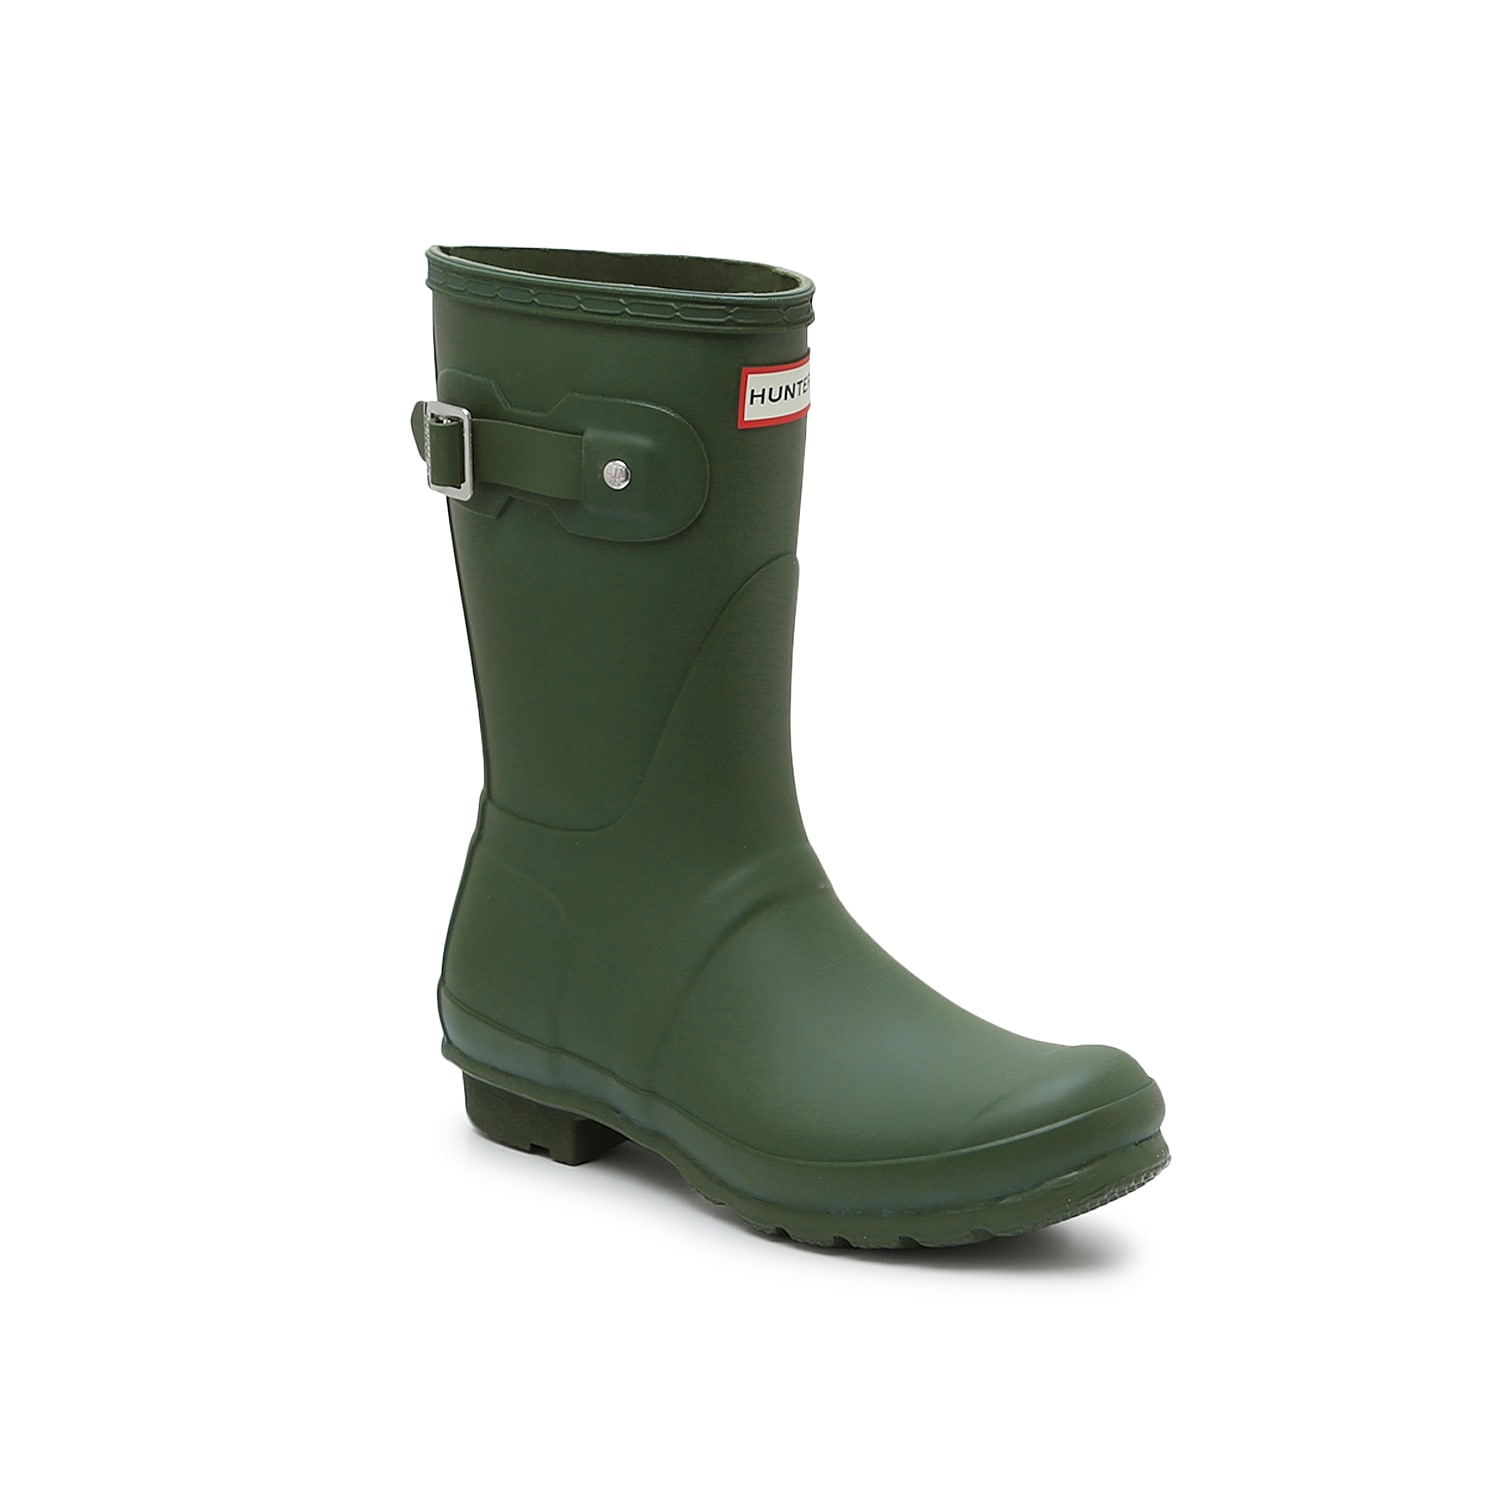 Don\\\'t be afraid to splash around in the Hunter Original Short Matte rain boot. These matte wellies feature an adjustable back gusset, so you can rock this waterproof pair with jeans and thick socks without a problem. Click here for Boot Measuring Guide.